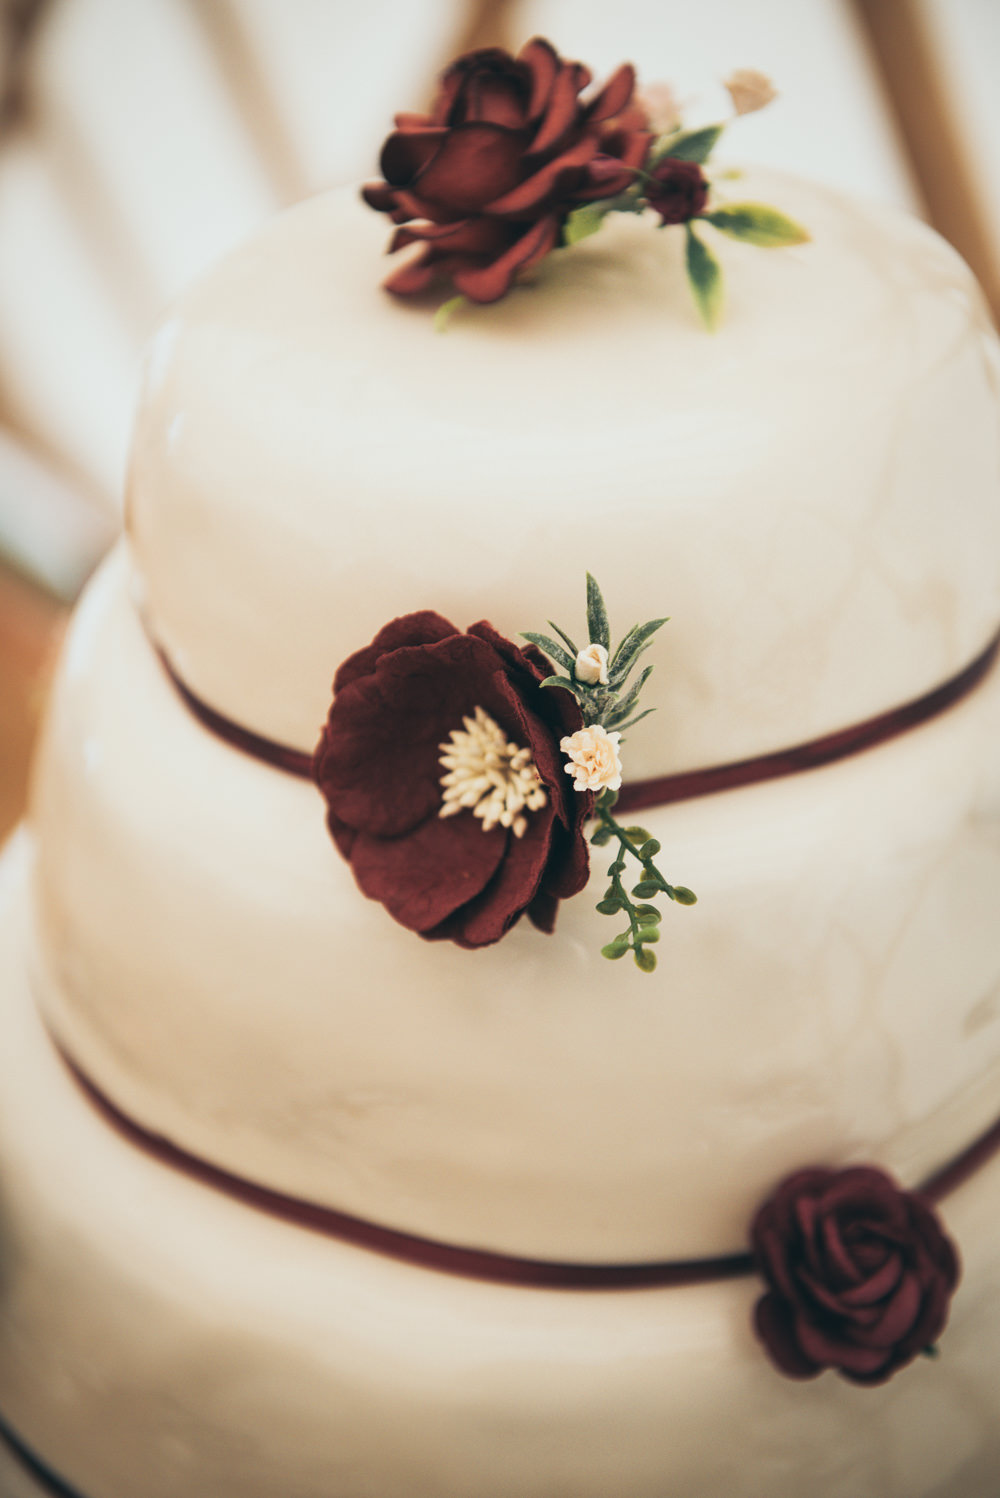 Iced Cake Burgundy Flowers Fron Farm Yurt Retreat Wedding Cat Arwel Photography